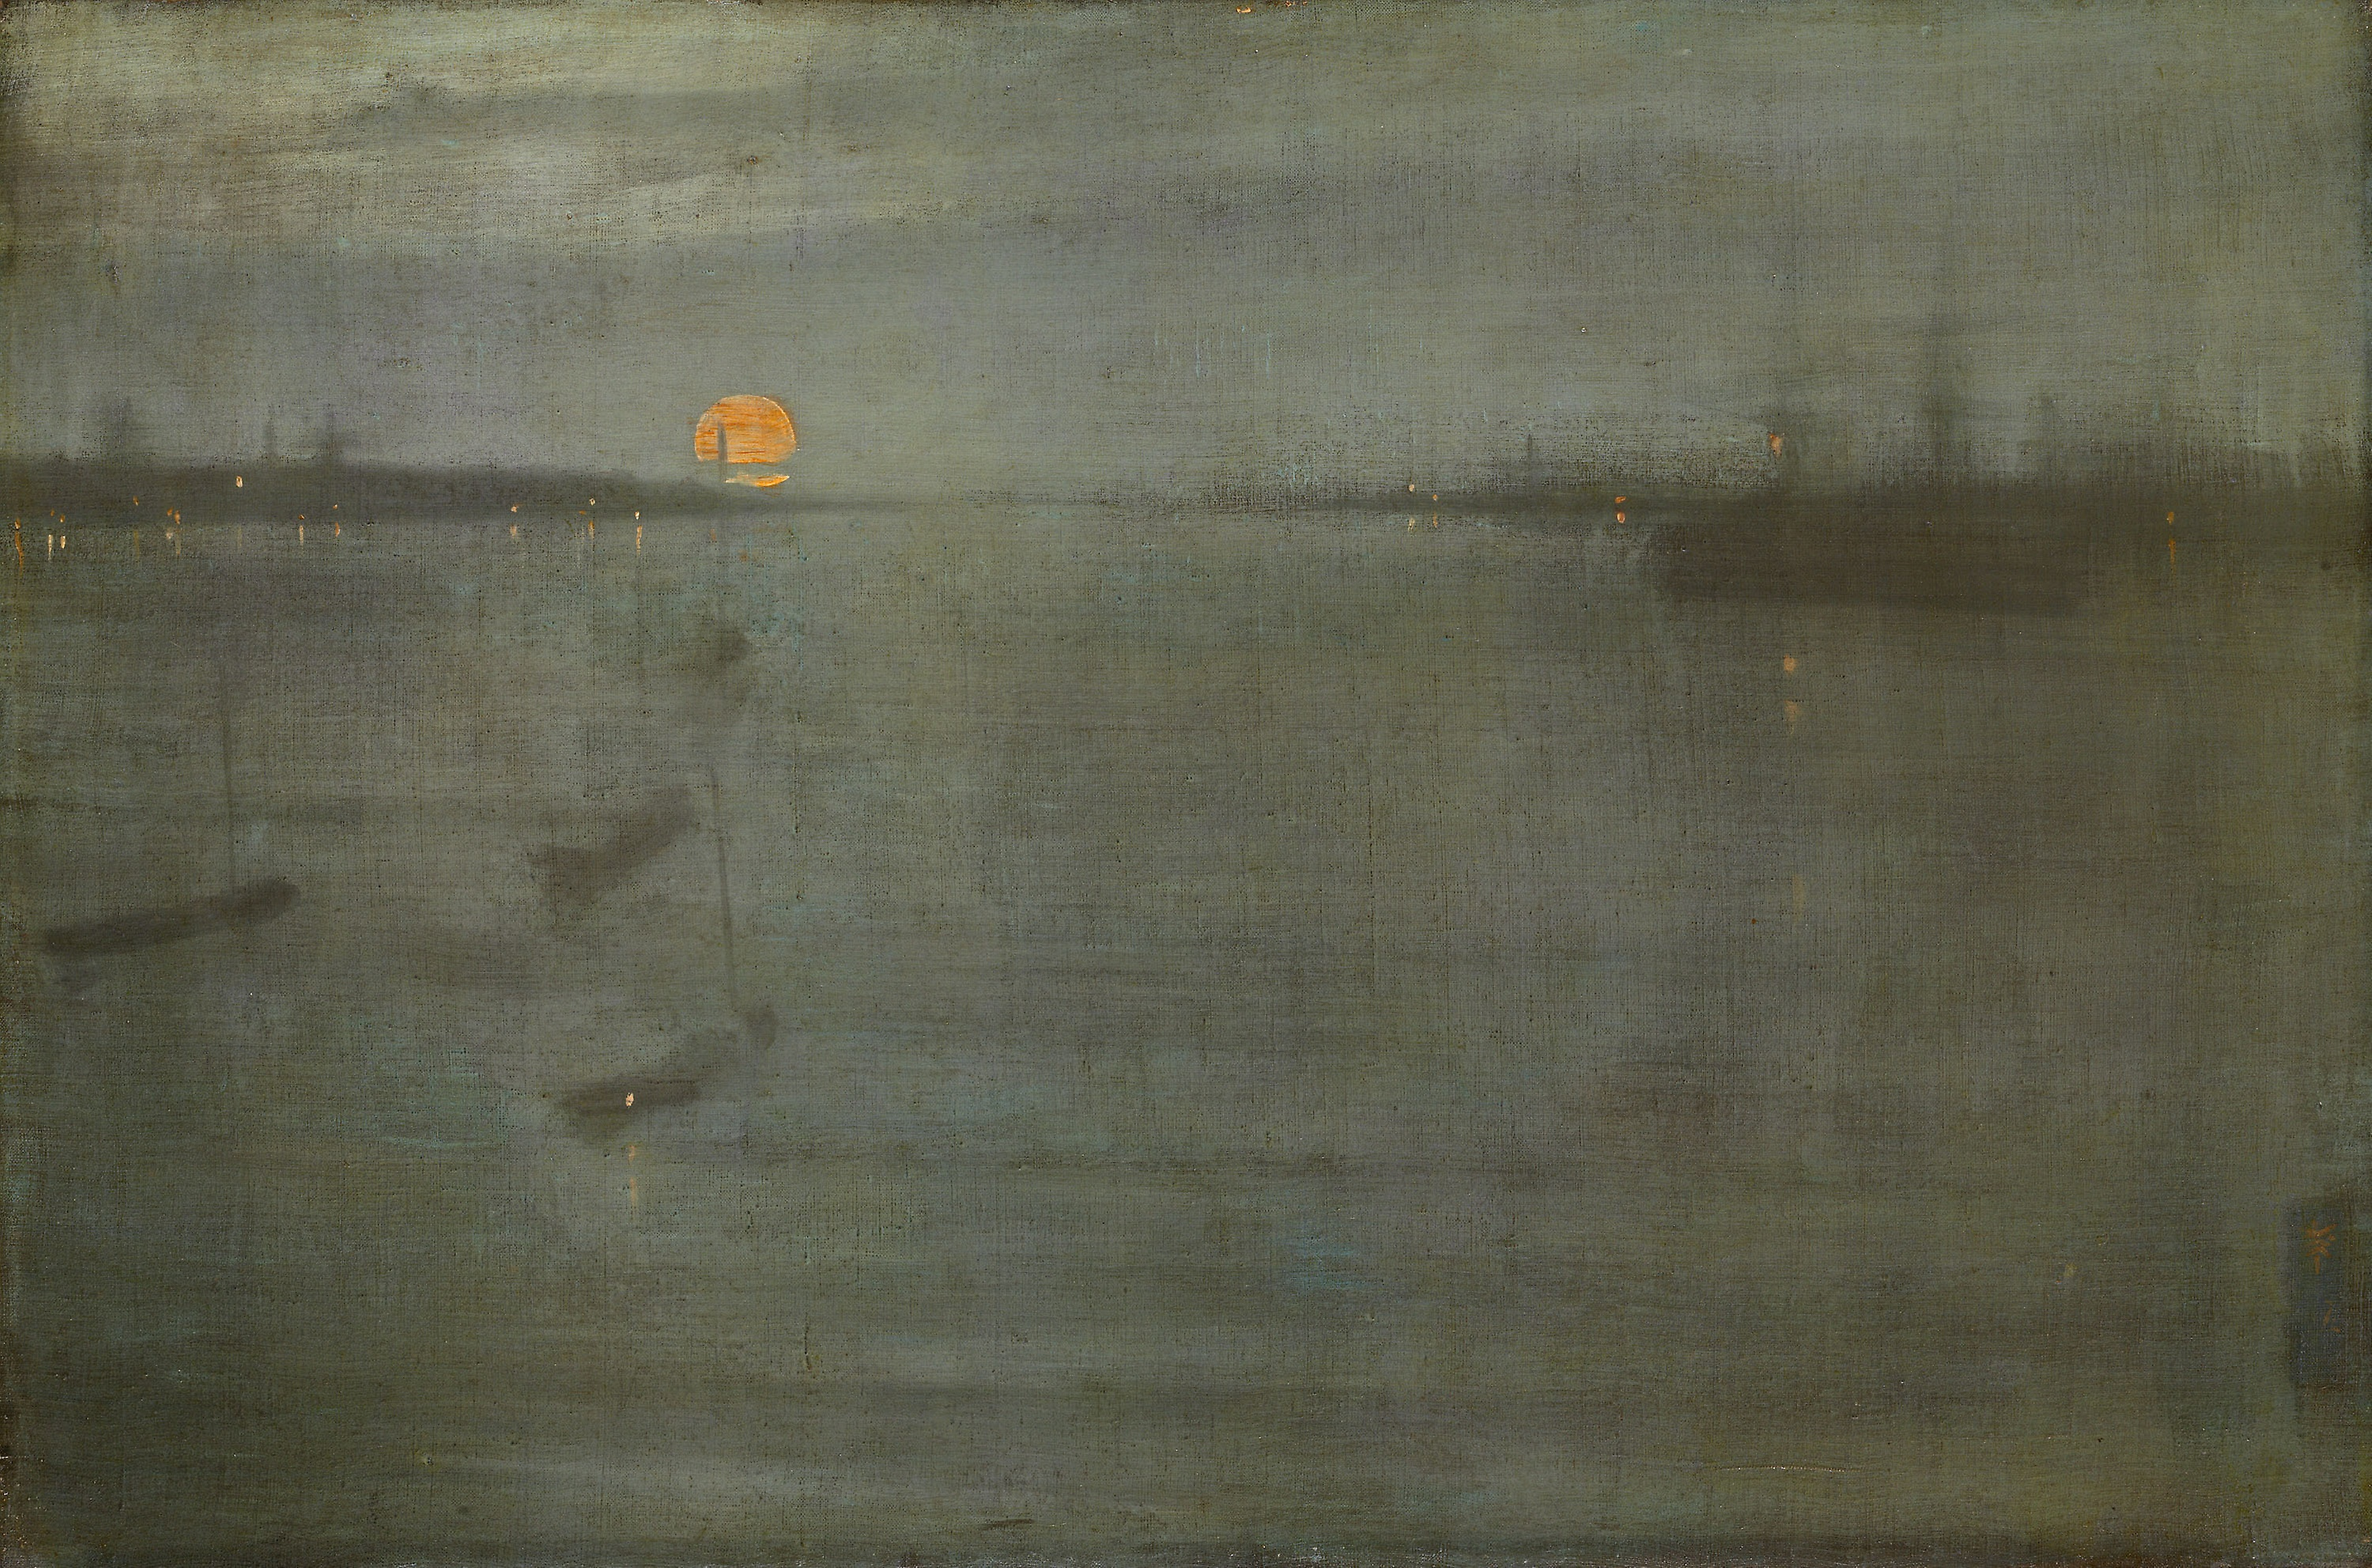 James McNeill Whistler - Nocturne, Blue and Gold—Southampton Water - 1900.52 - Art Institute of Chicago.jpg